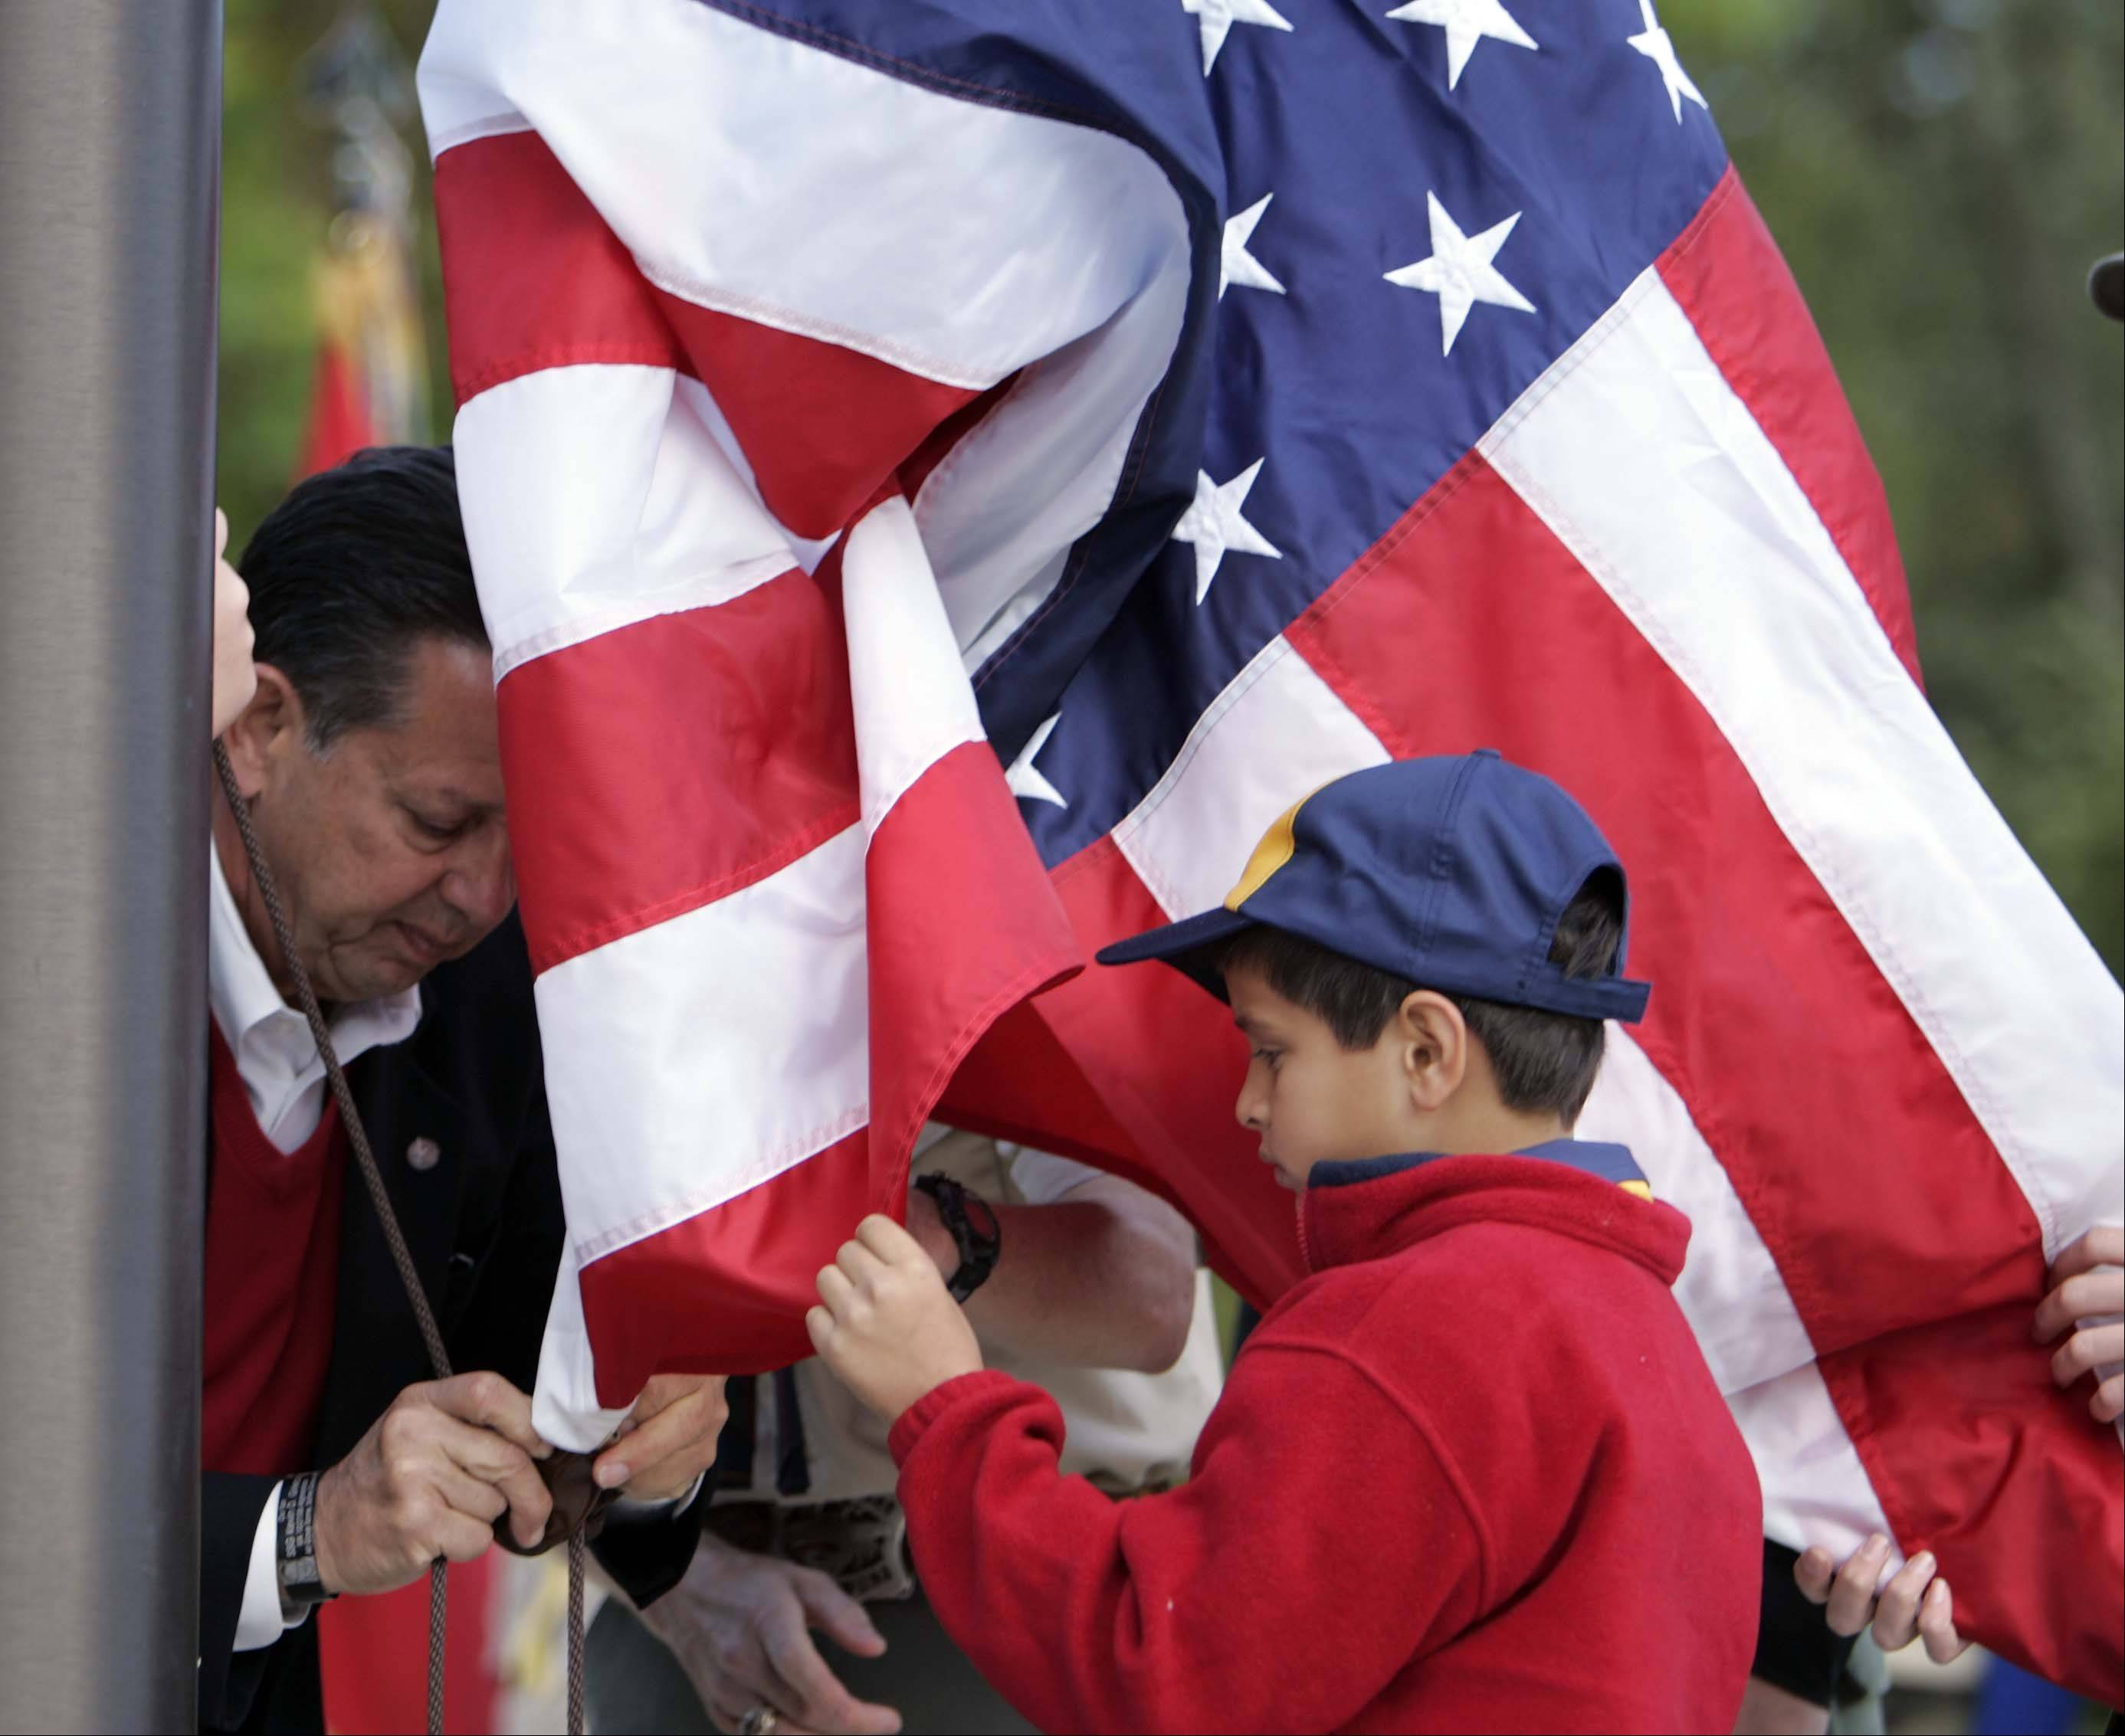 Ralph Grieco, father of Kevin Grieco, helps his grandson Joshua, 8, attach and raise the American flag during a ceremony where the Three Fires Council honored the Eagle Scout and Illinois National Guardsman who was killed in Afghanistan in 2008.